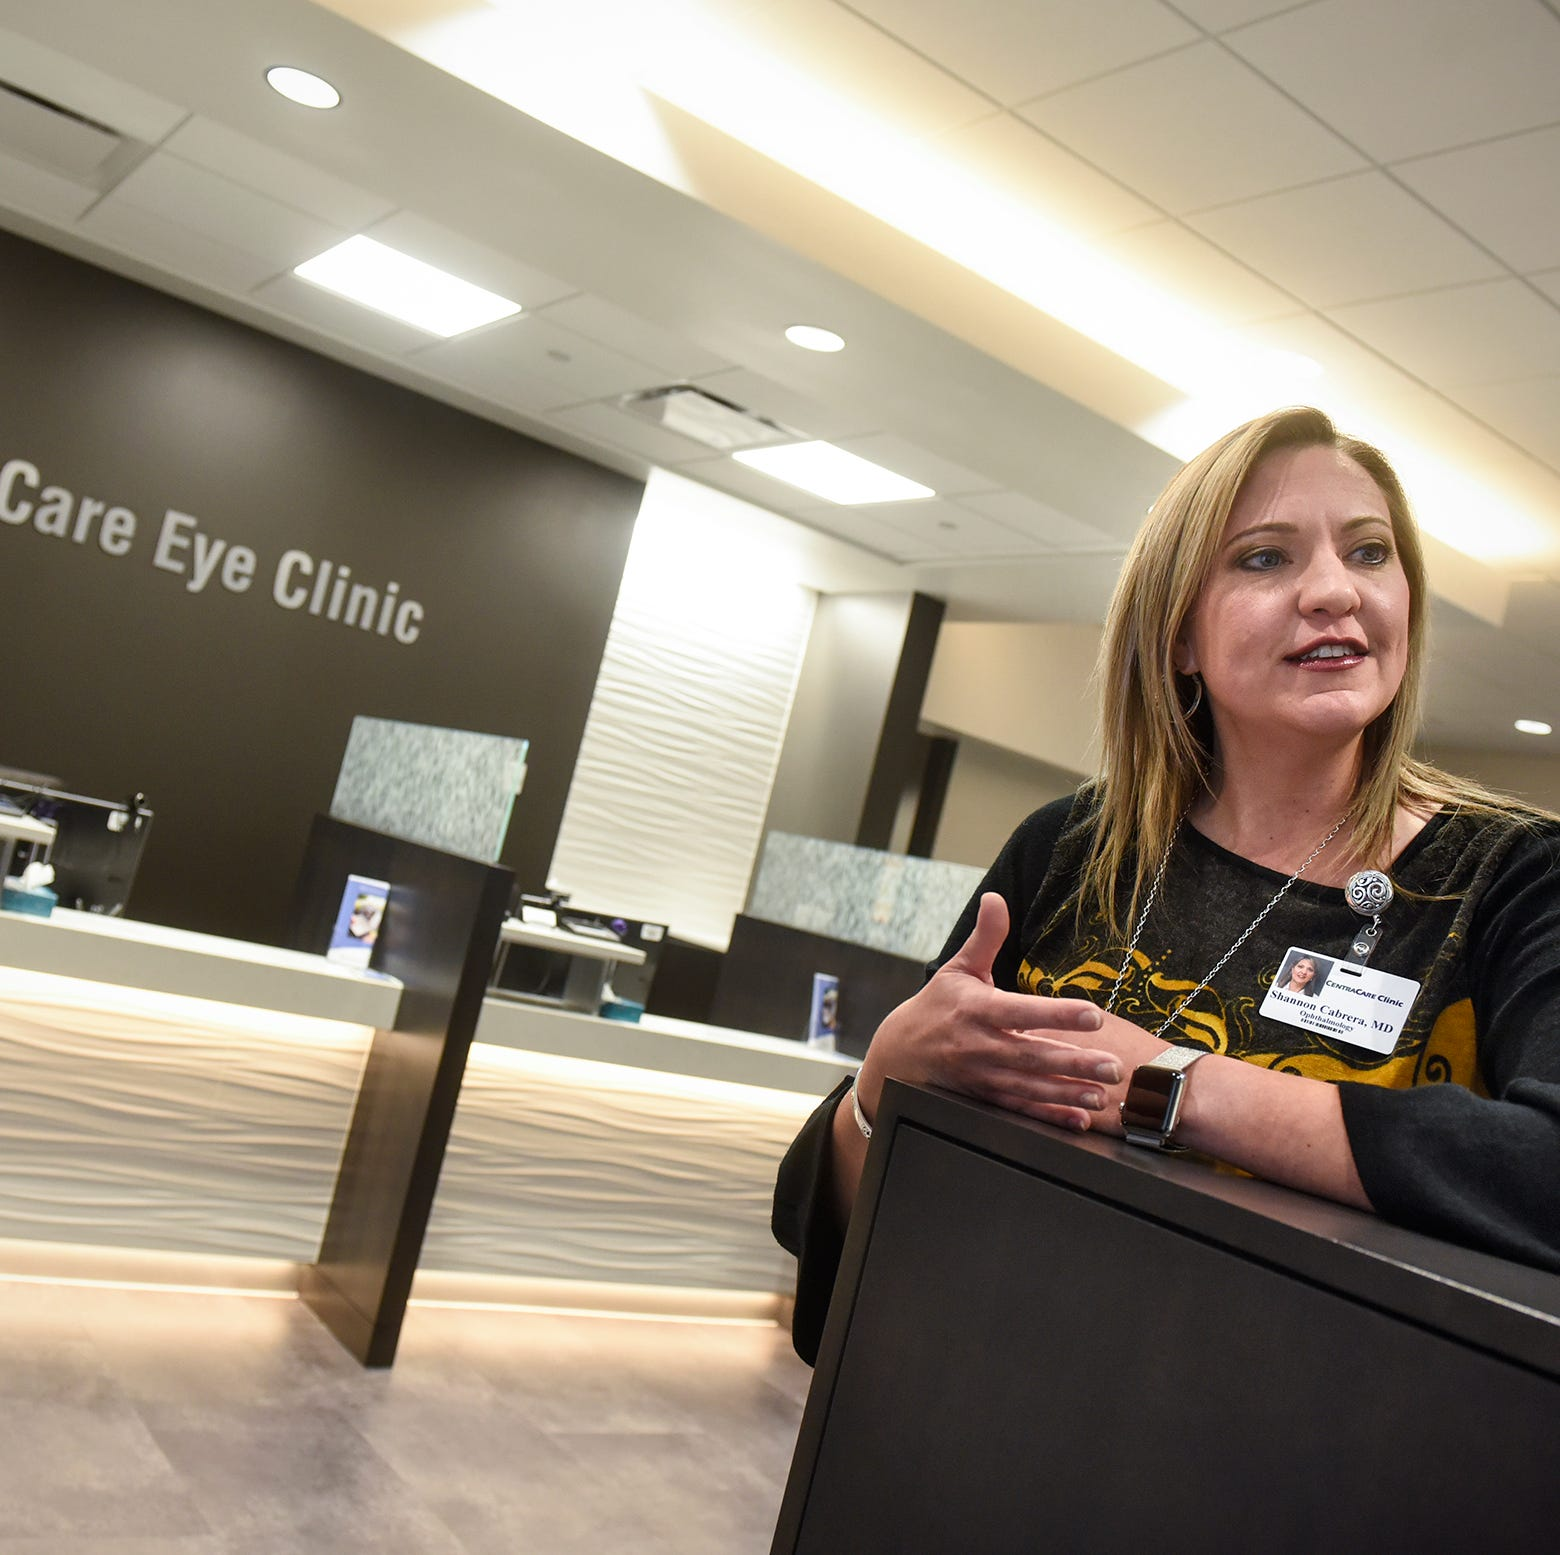 Take a peek at CentraCare's new eye clinic in Sartell